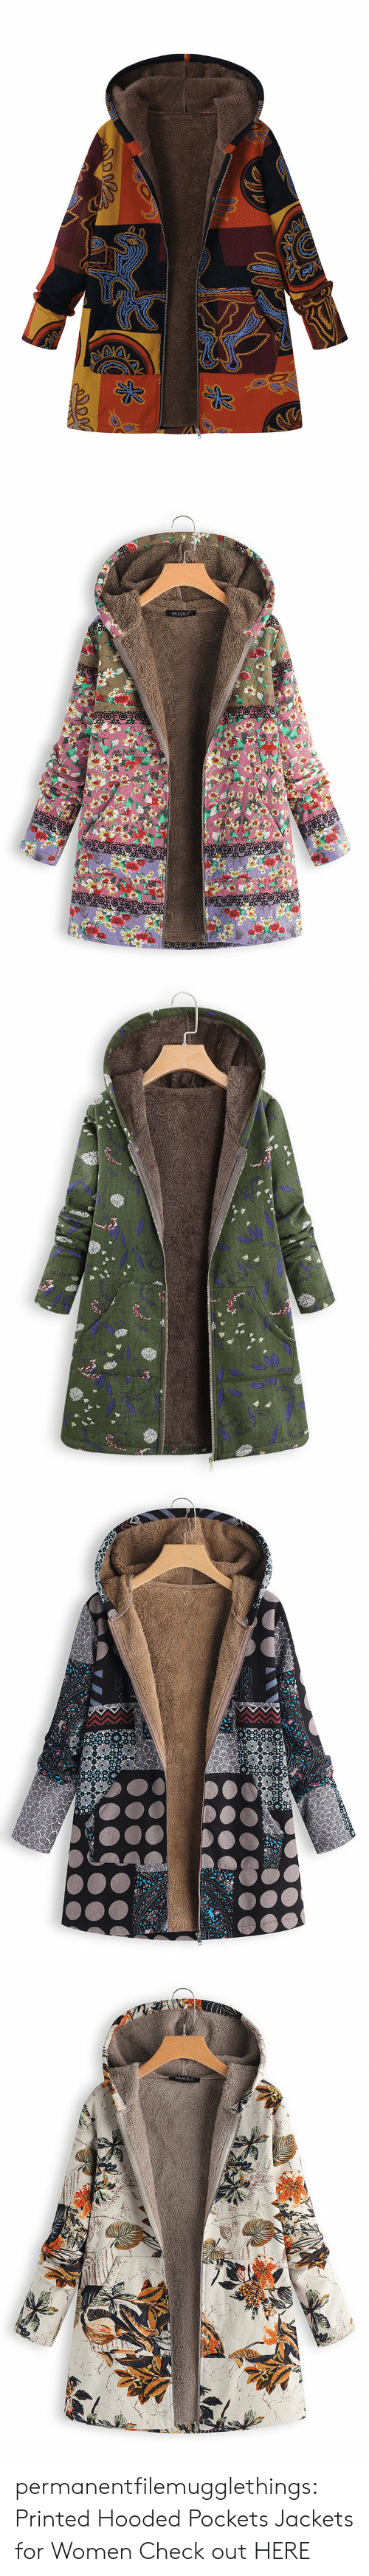 Tumblr, Blog, and Women: Opoo   GRACILA   w  וadll  -ו3 y permanentfilemugglethings:  Printed Hooded Pockets Jackets for Women Check out HERE